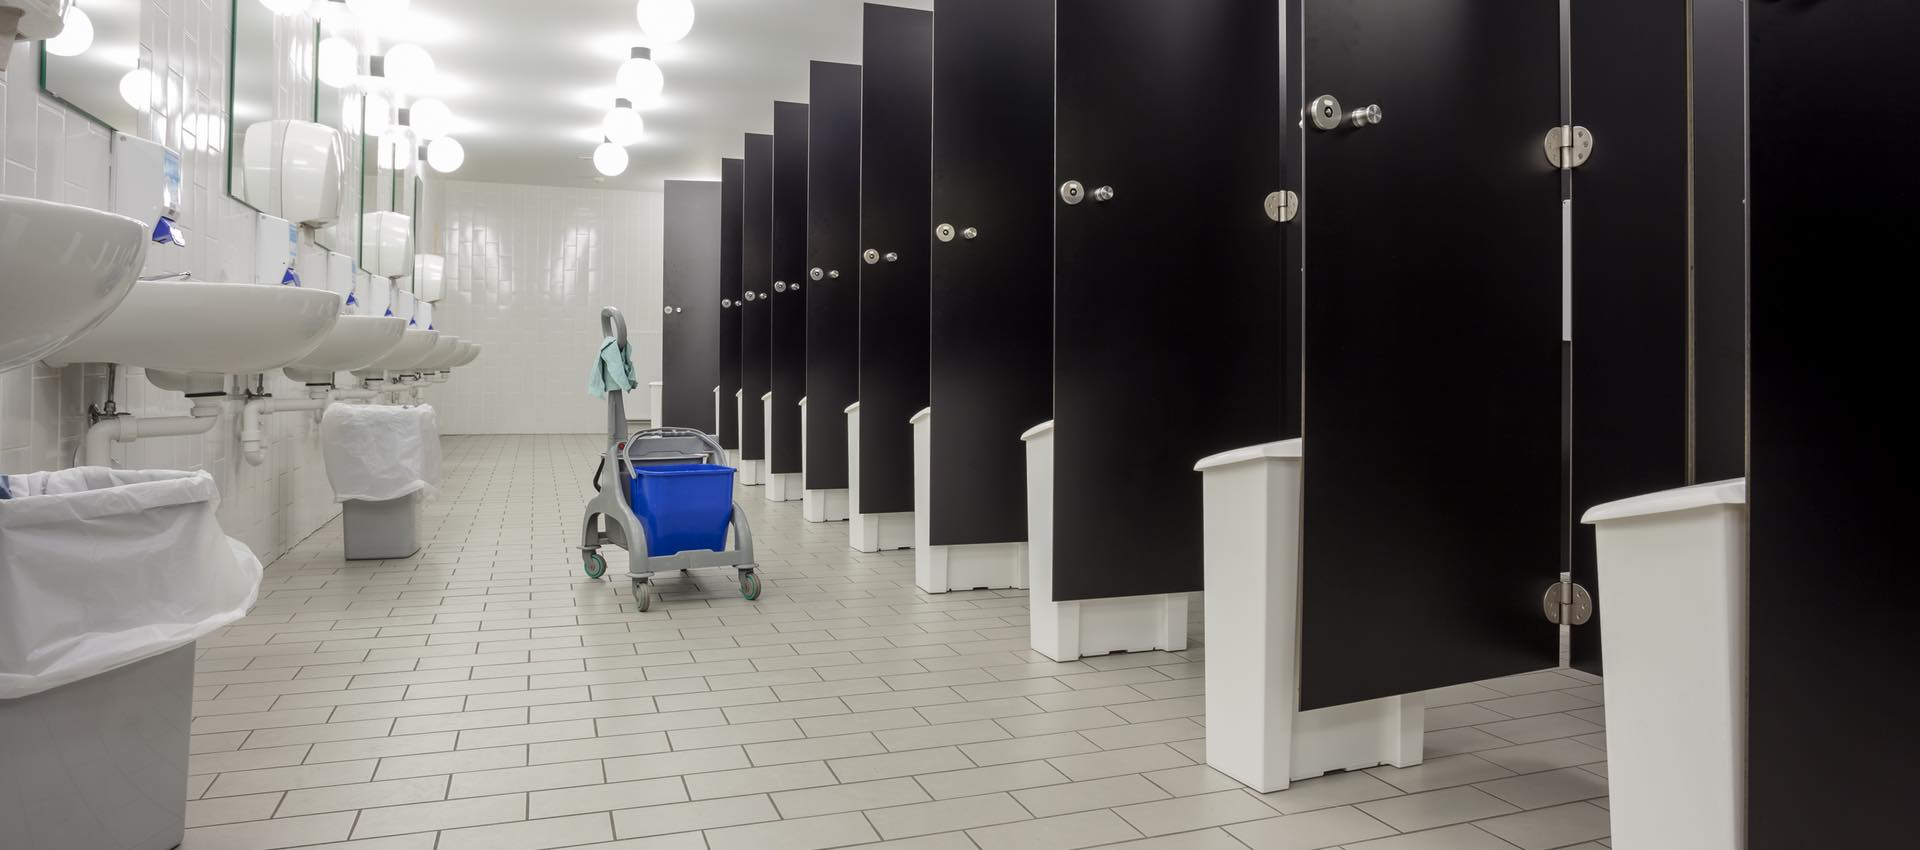 Greater Puget Sound Commercial Cleaning: Importance of Hygienic Restroom Maintenance